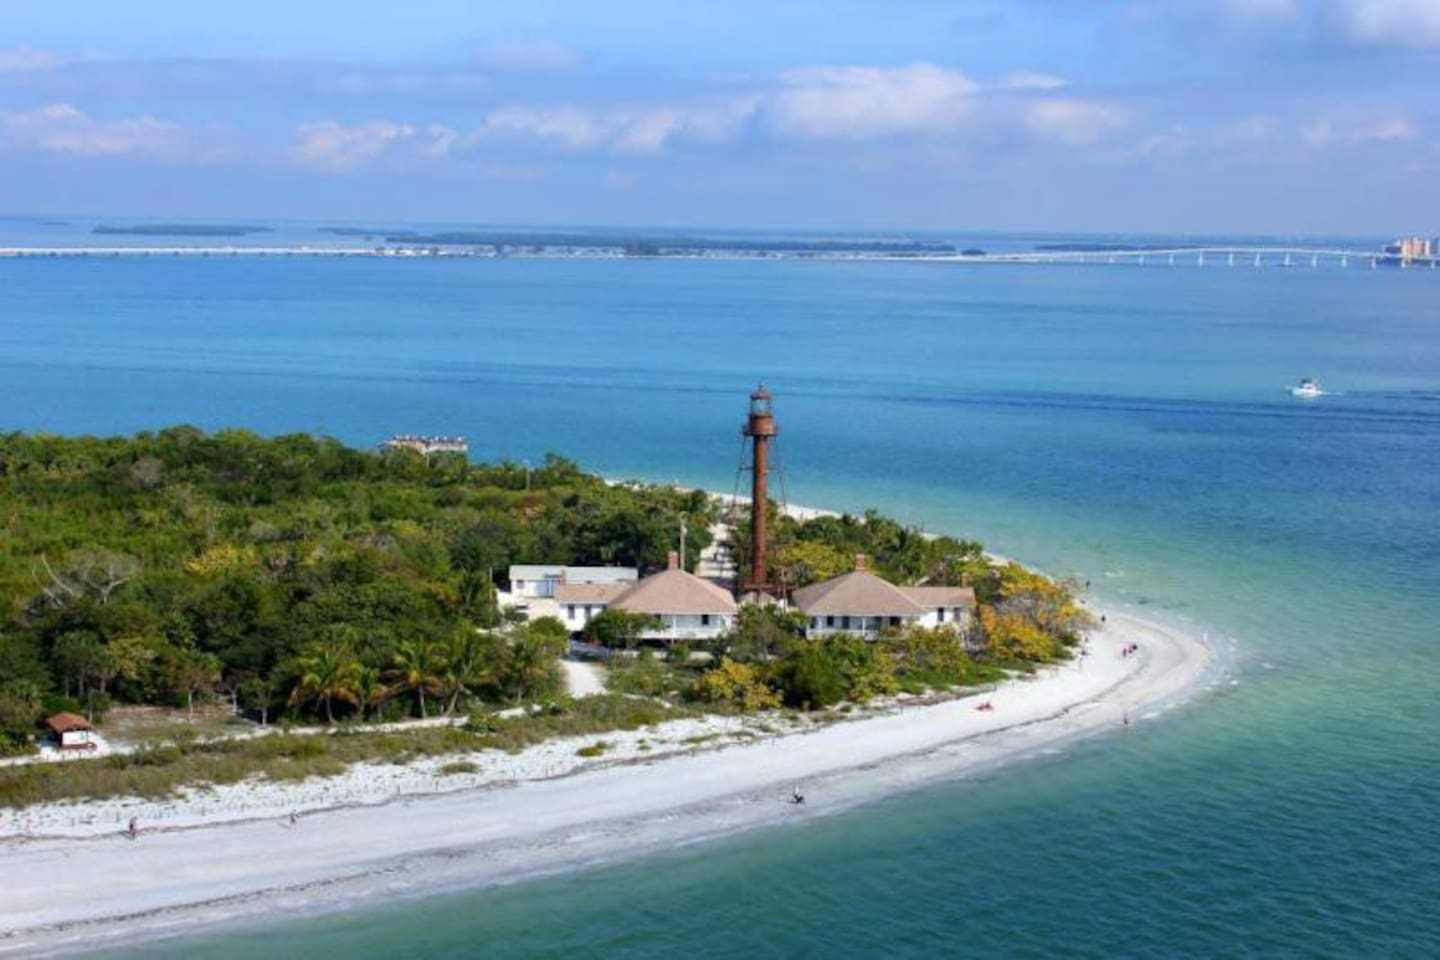 The Sanibel Island Light or Point Ybel Light was one of the first lighthouses on Florida's Gulf coast north of Key West and the Dry Tortugas